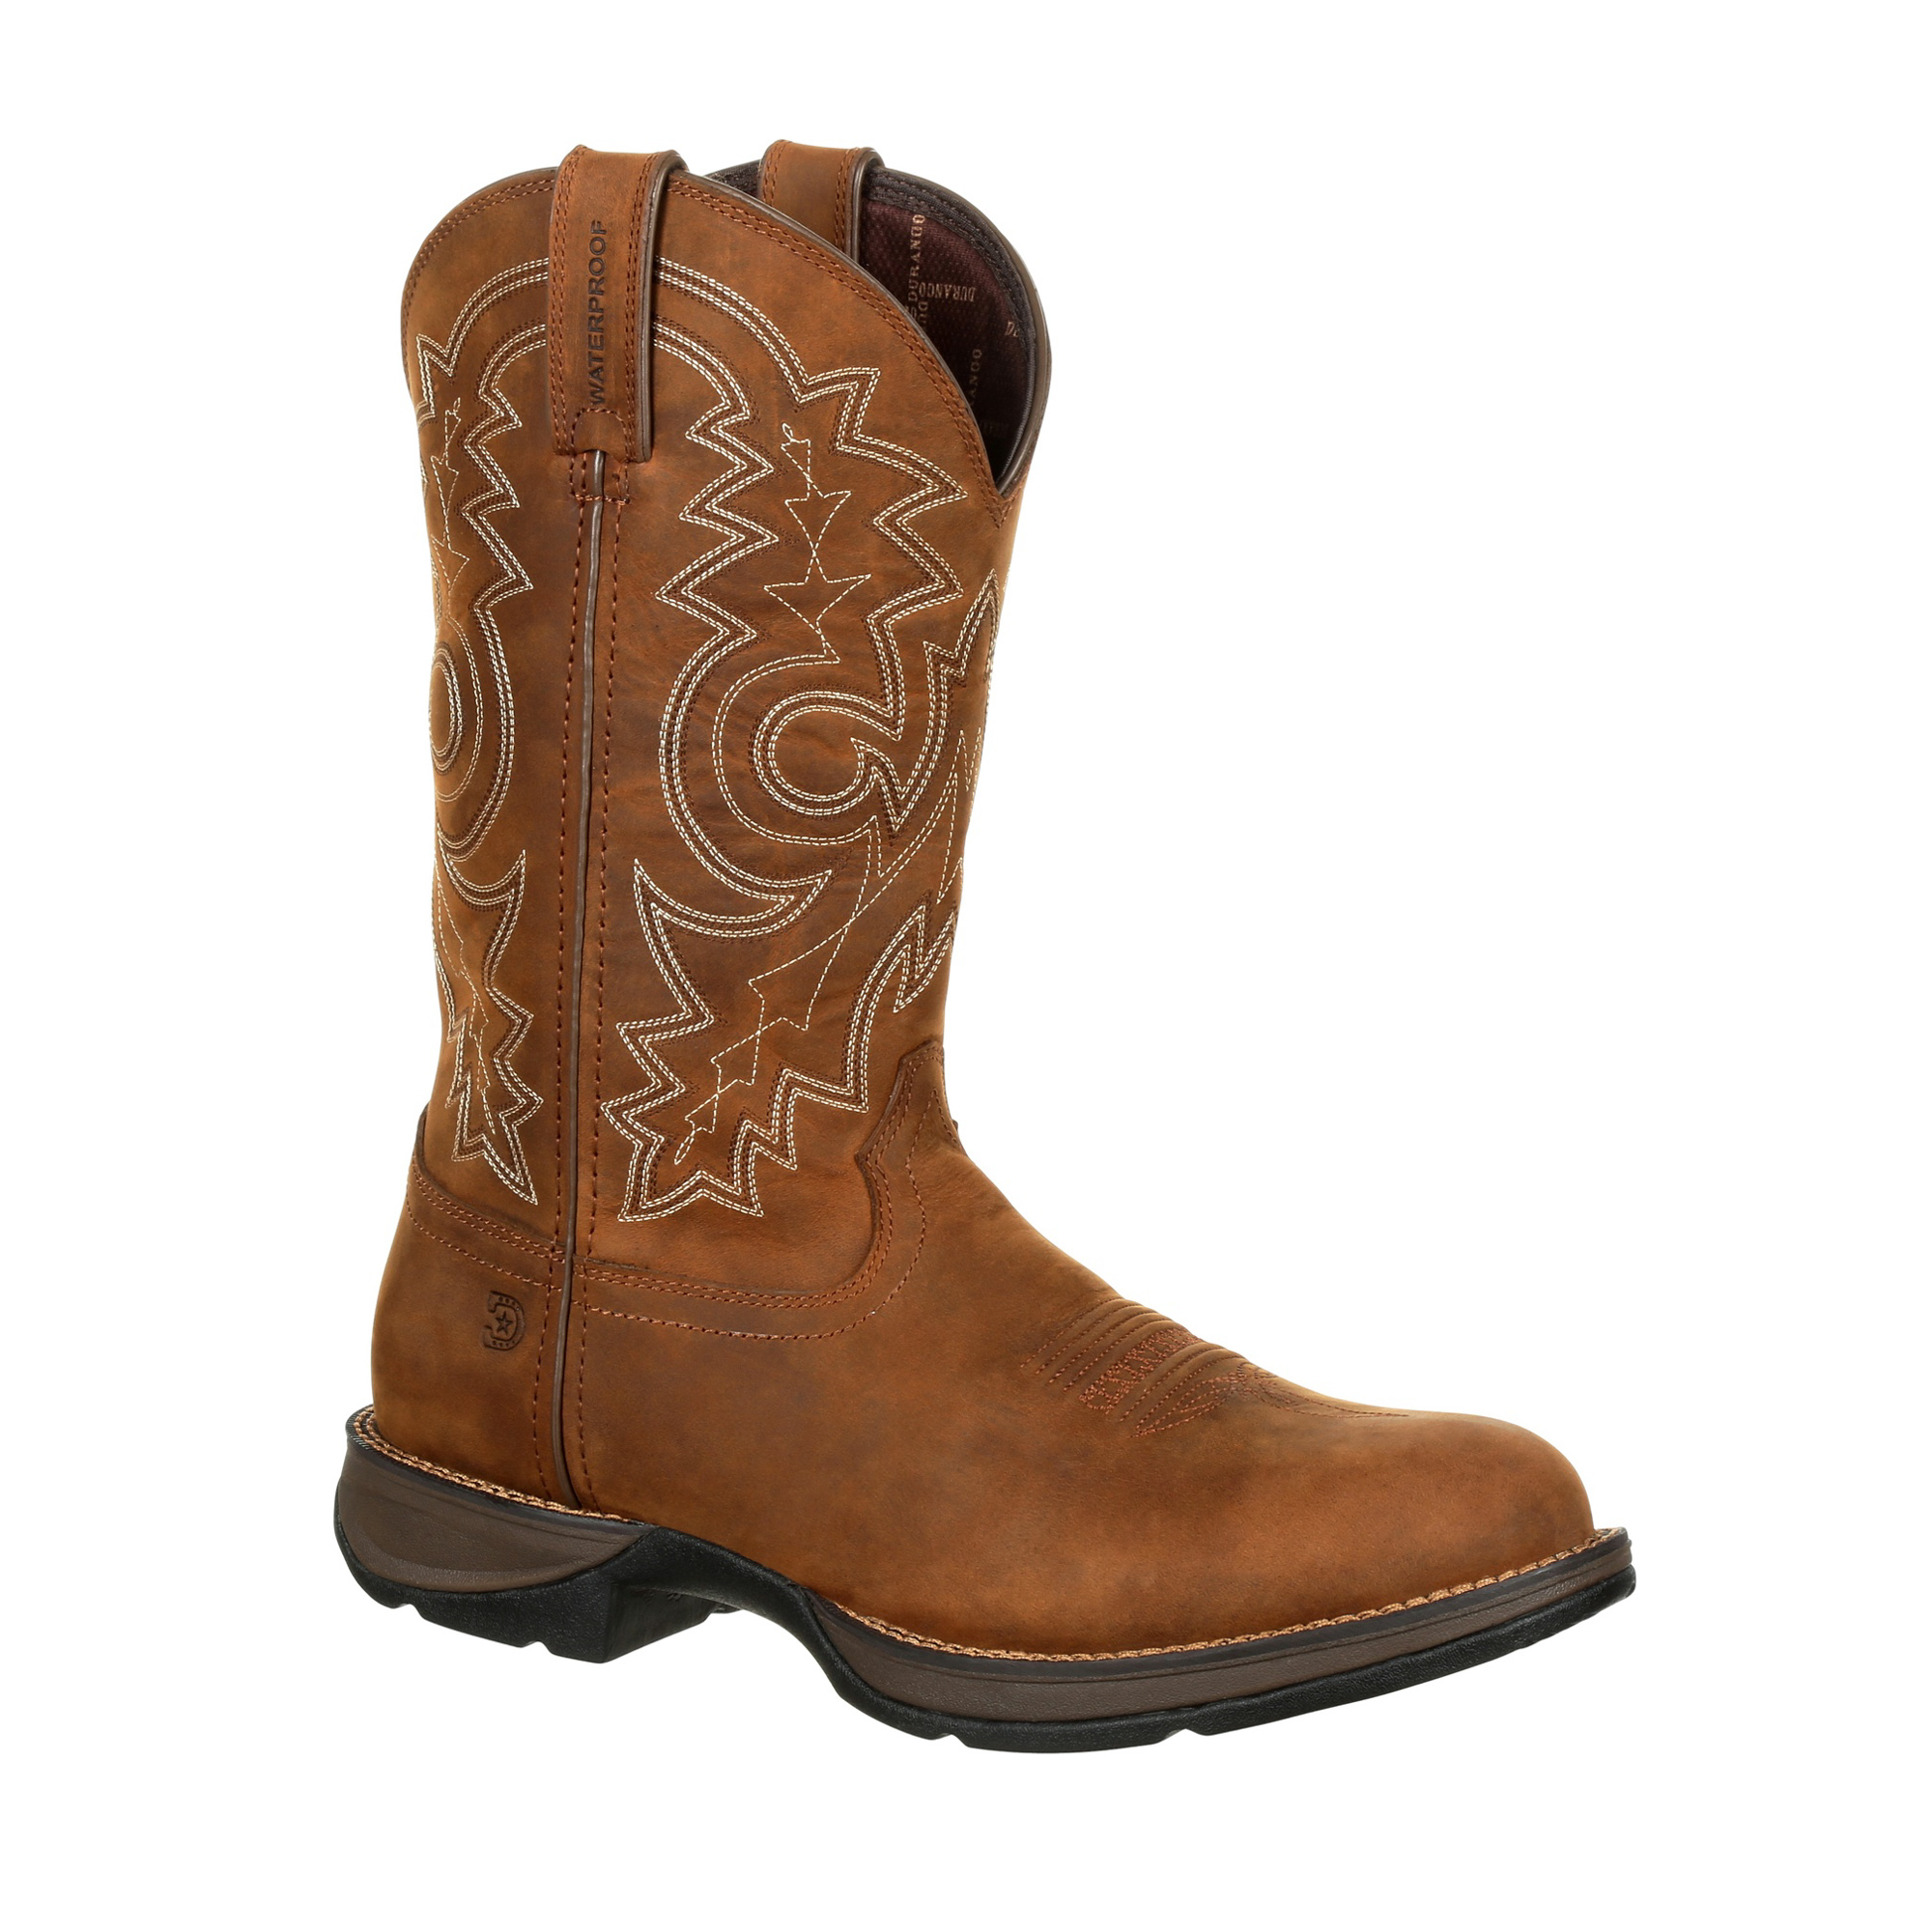 Durango Mens Coyote Brown Leather WP Rebel Cowboy Boots